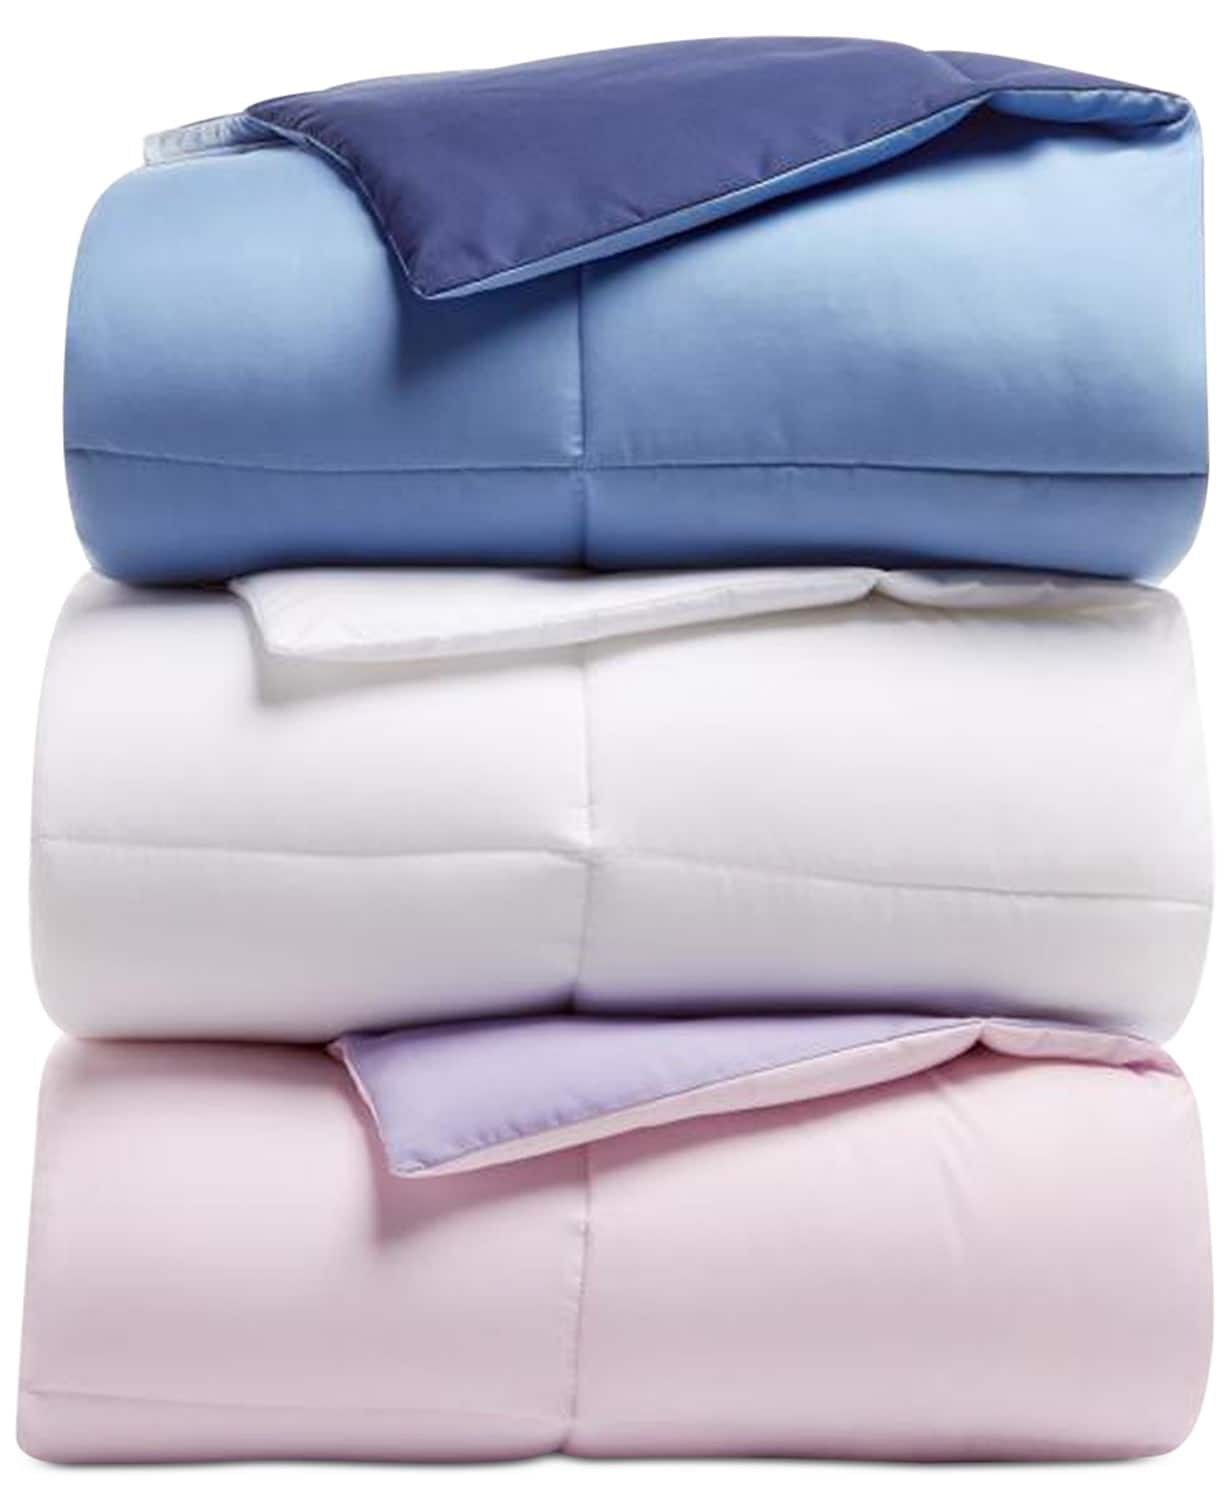 Martha Stewart Essentials Reversible Down Alternative Comforter (queen) + $10 Macys eGift Card $25.50 shipped via Slickdeals Rebate, More